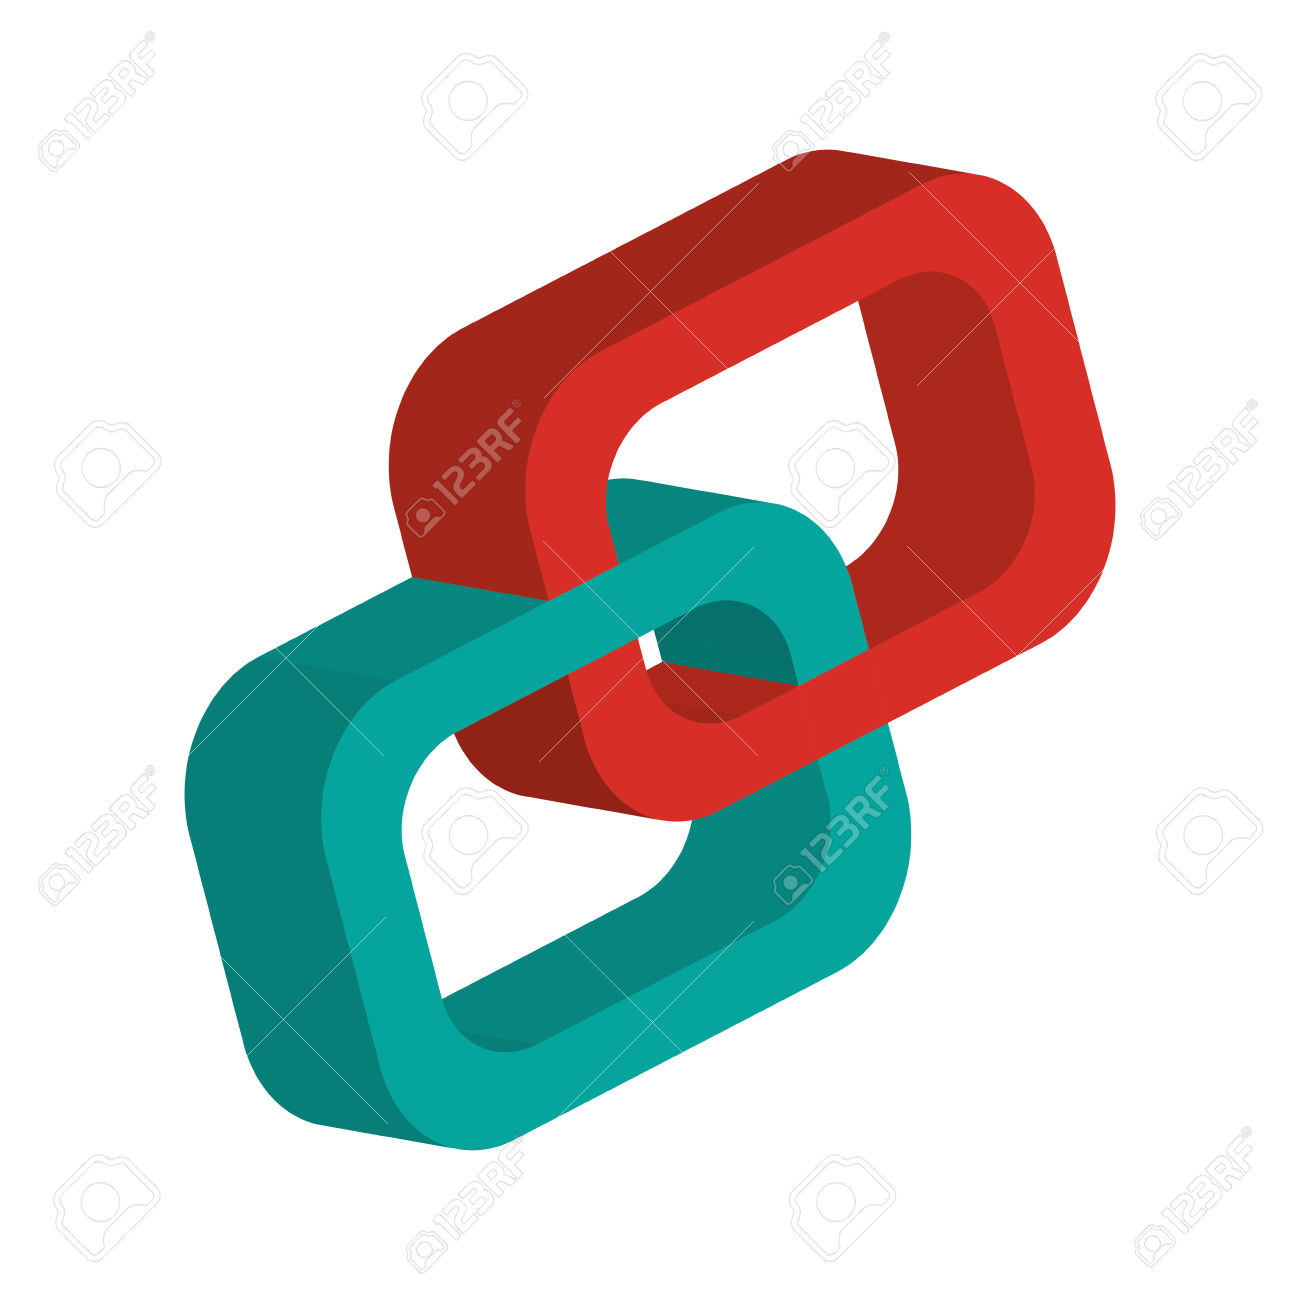 Flat Design 3d Link Chain Icon Vector Illustration Royalty Free.